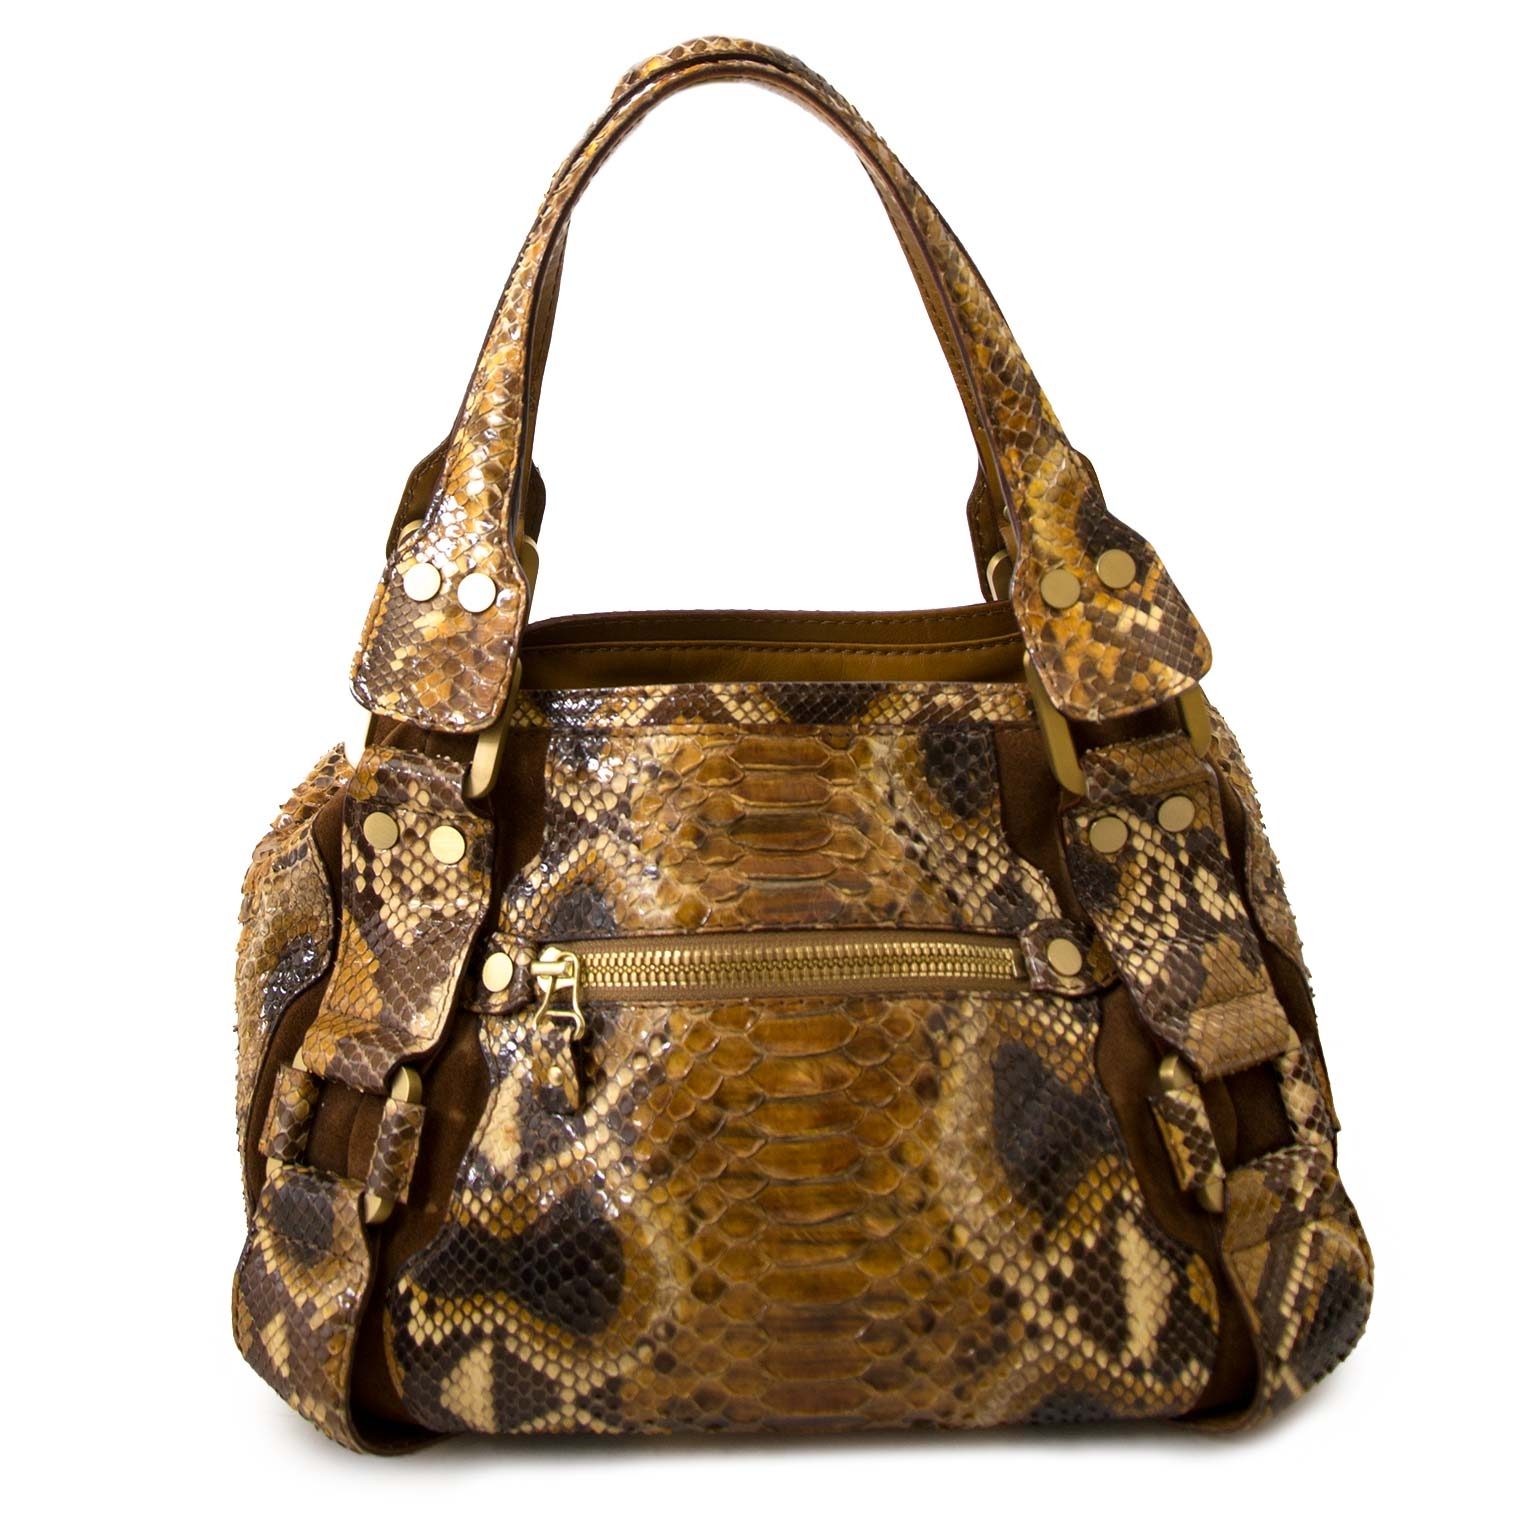 ... Buy authentic jimmy choo python bags at labellov vintage fashion  webshop belgium 95ebe01fe55d3